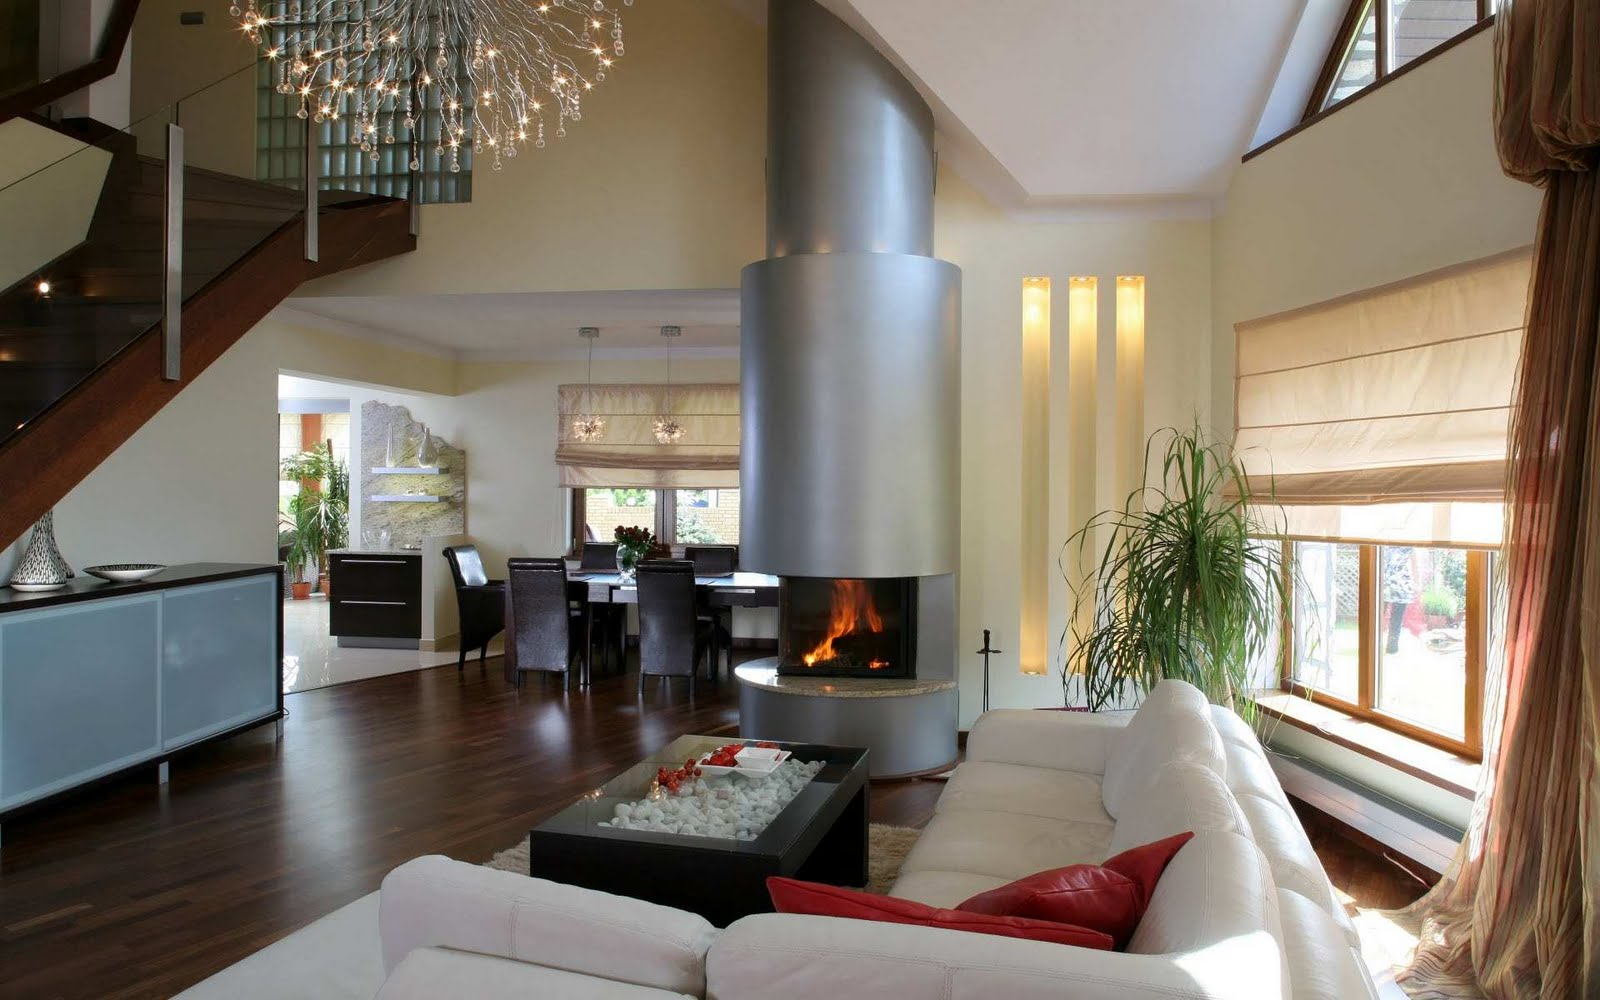 10 salas modernas con chimenea ideas para decorar for New home inside design